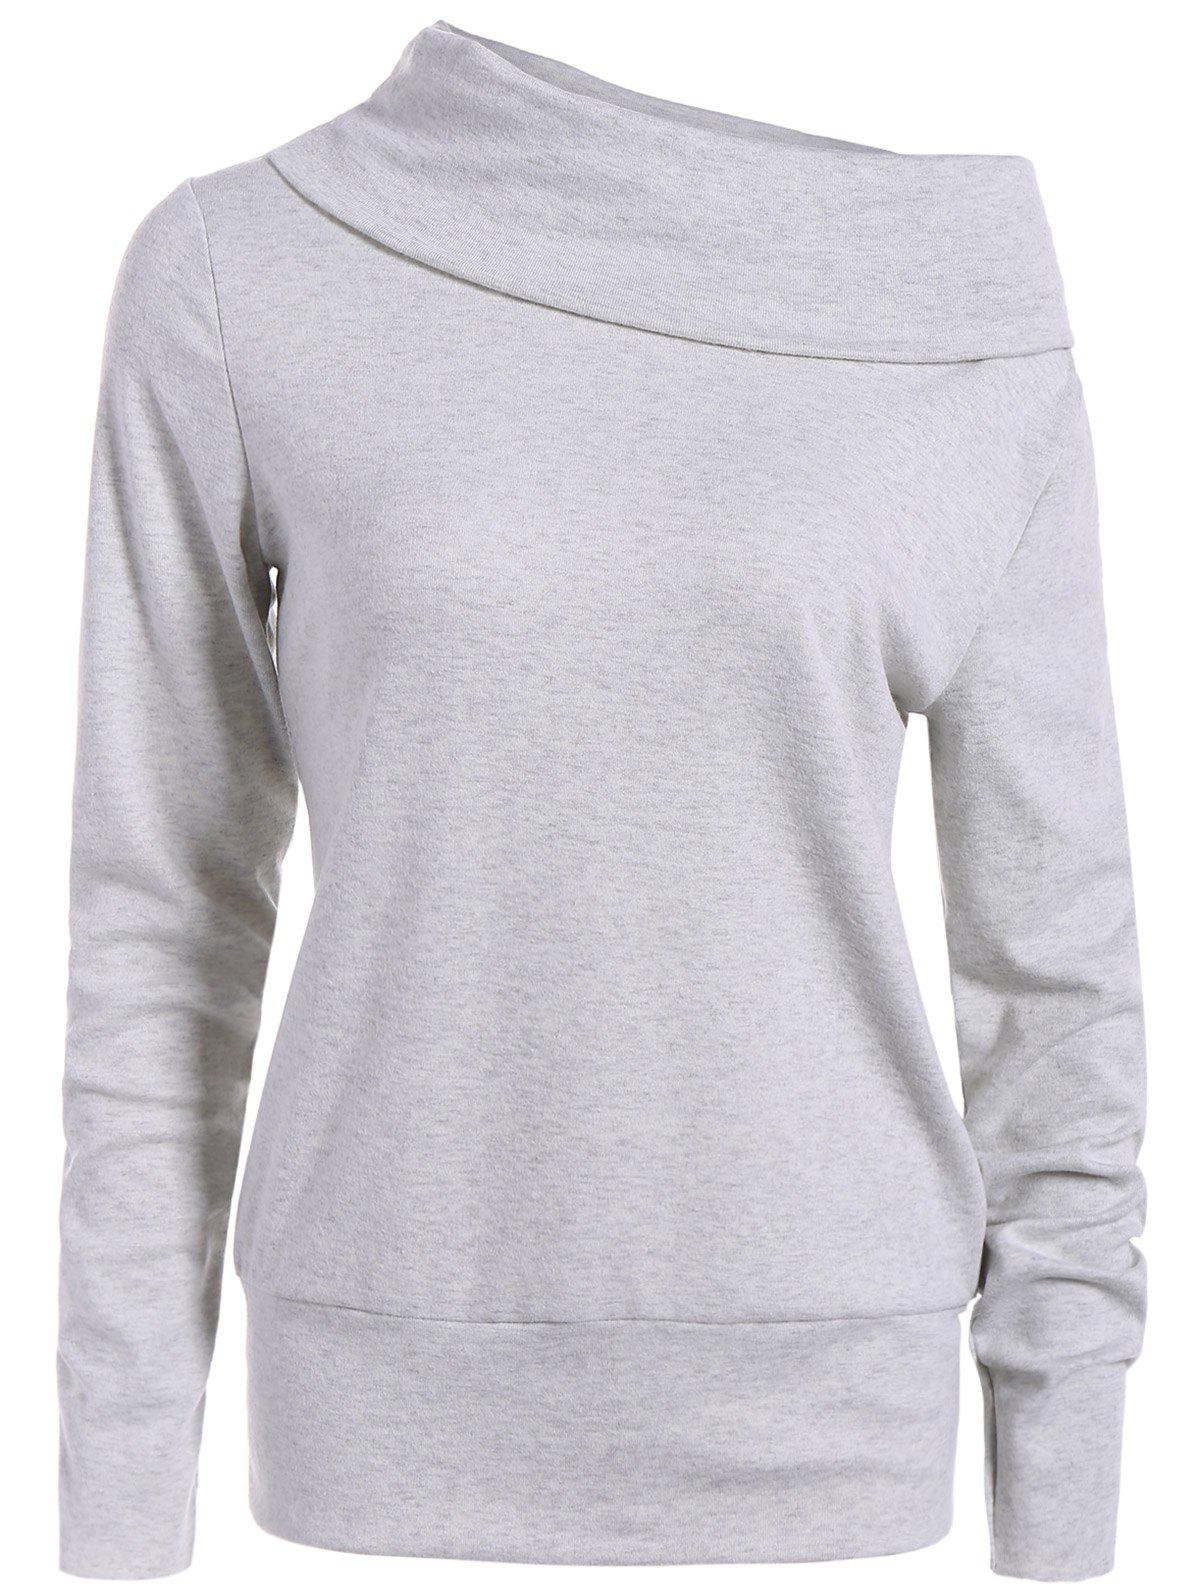 Haut Long Neck Sleeve Sweatshirt - Gris clair M